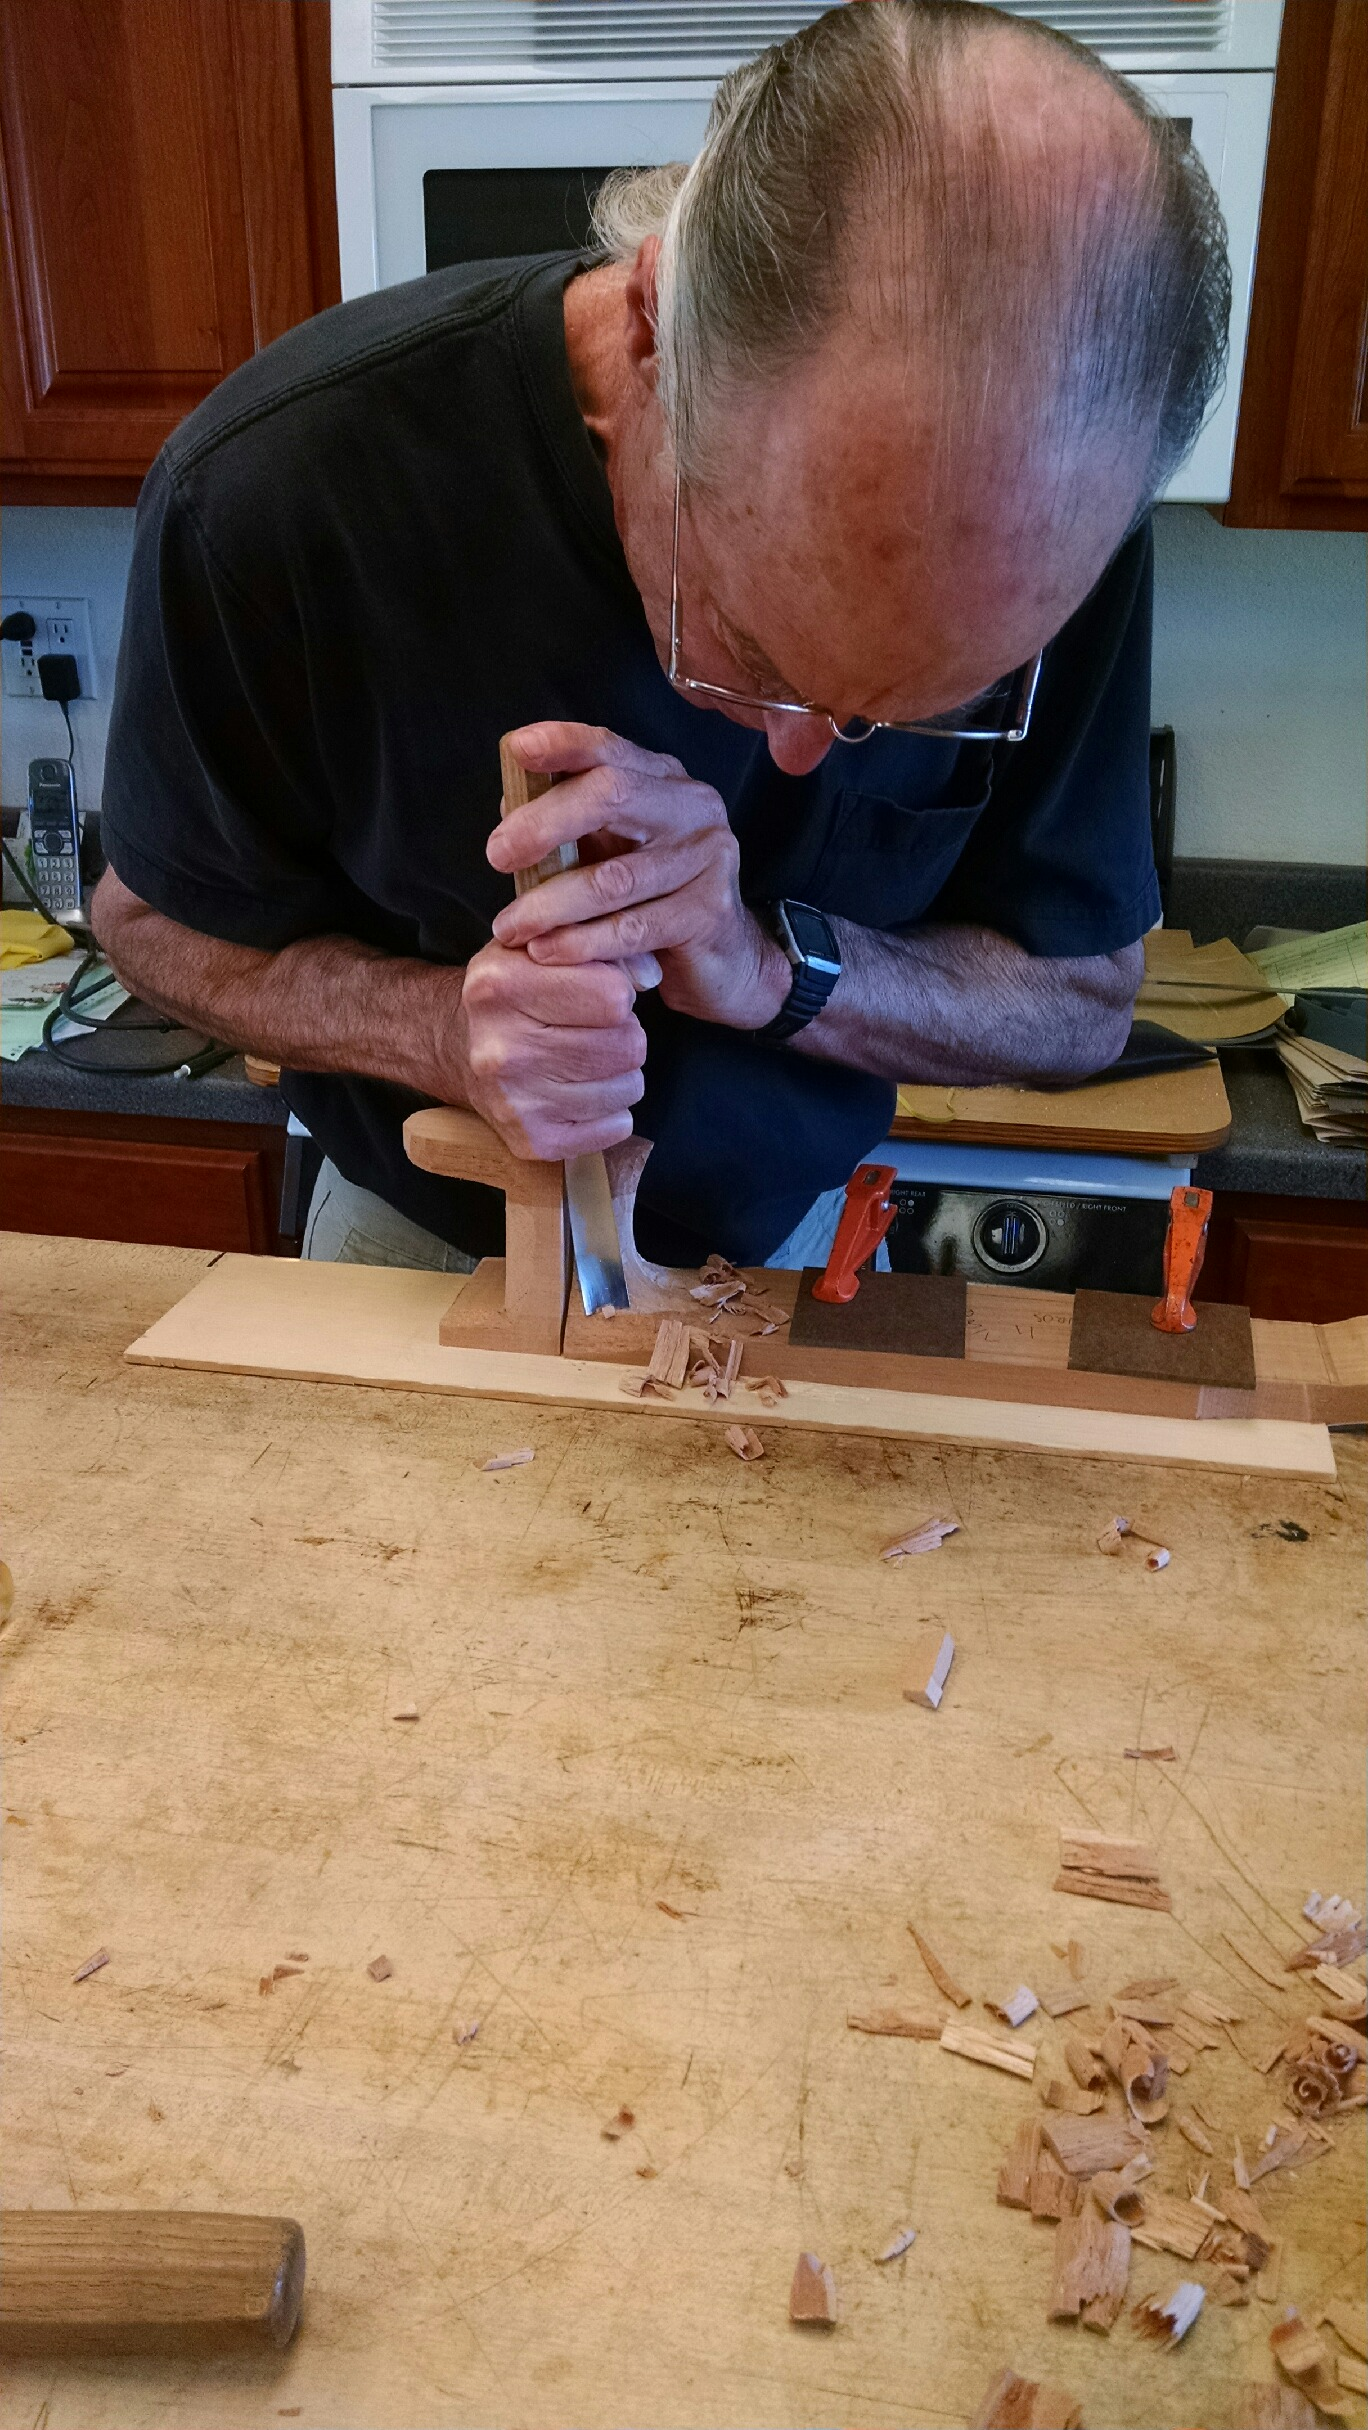 Carving the heel